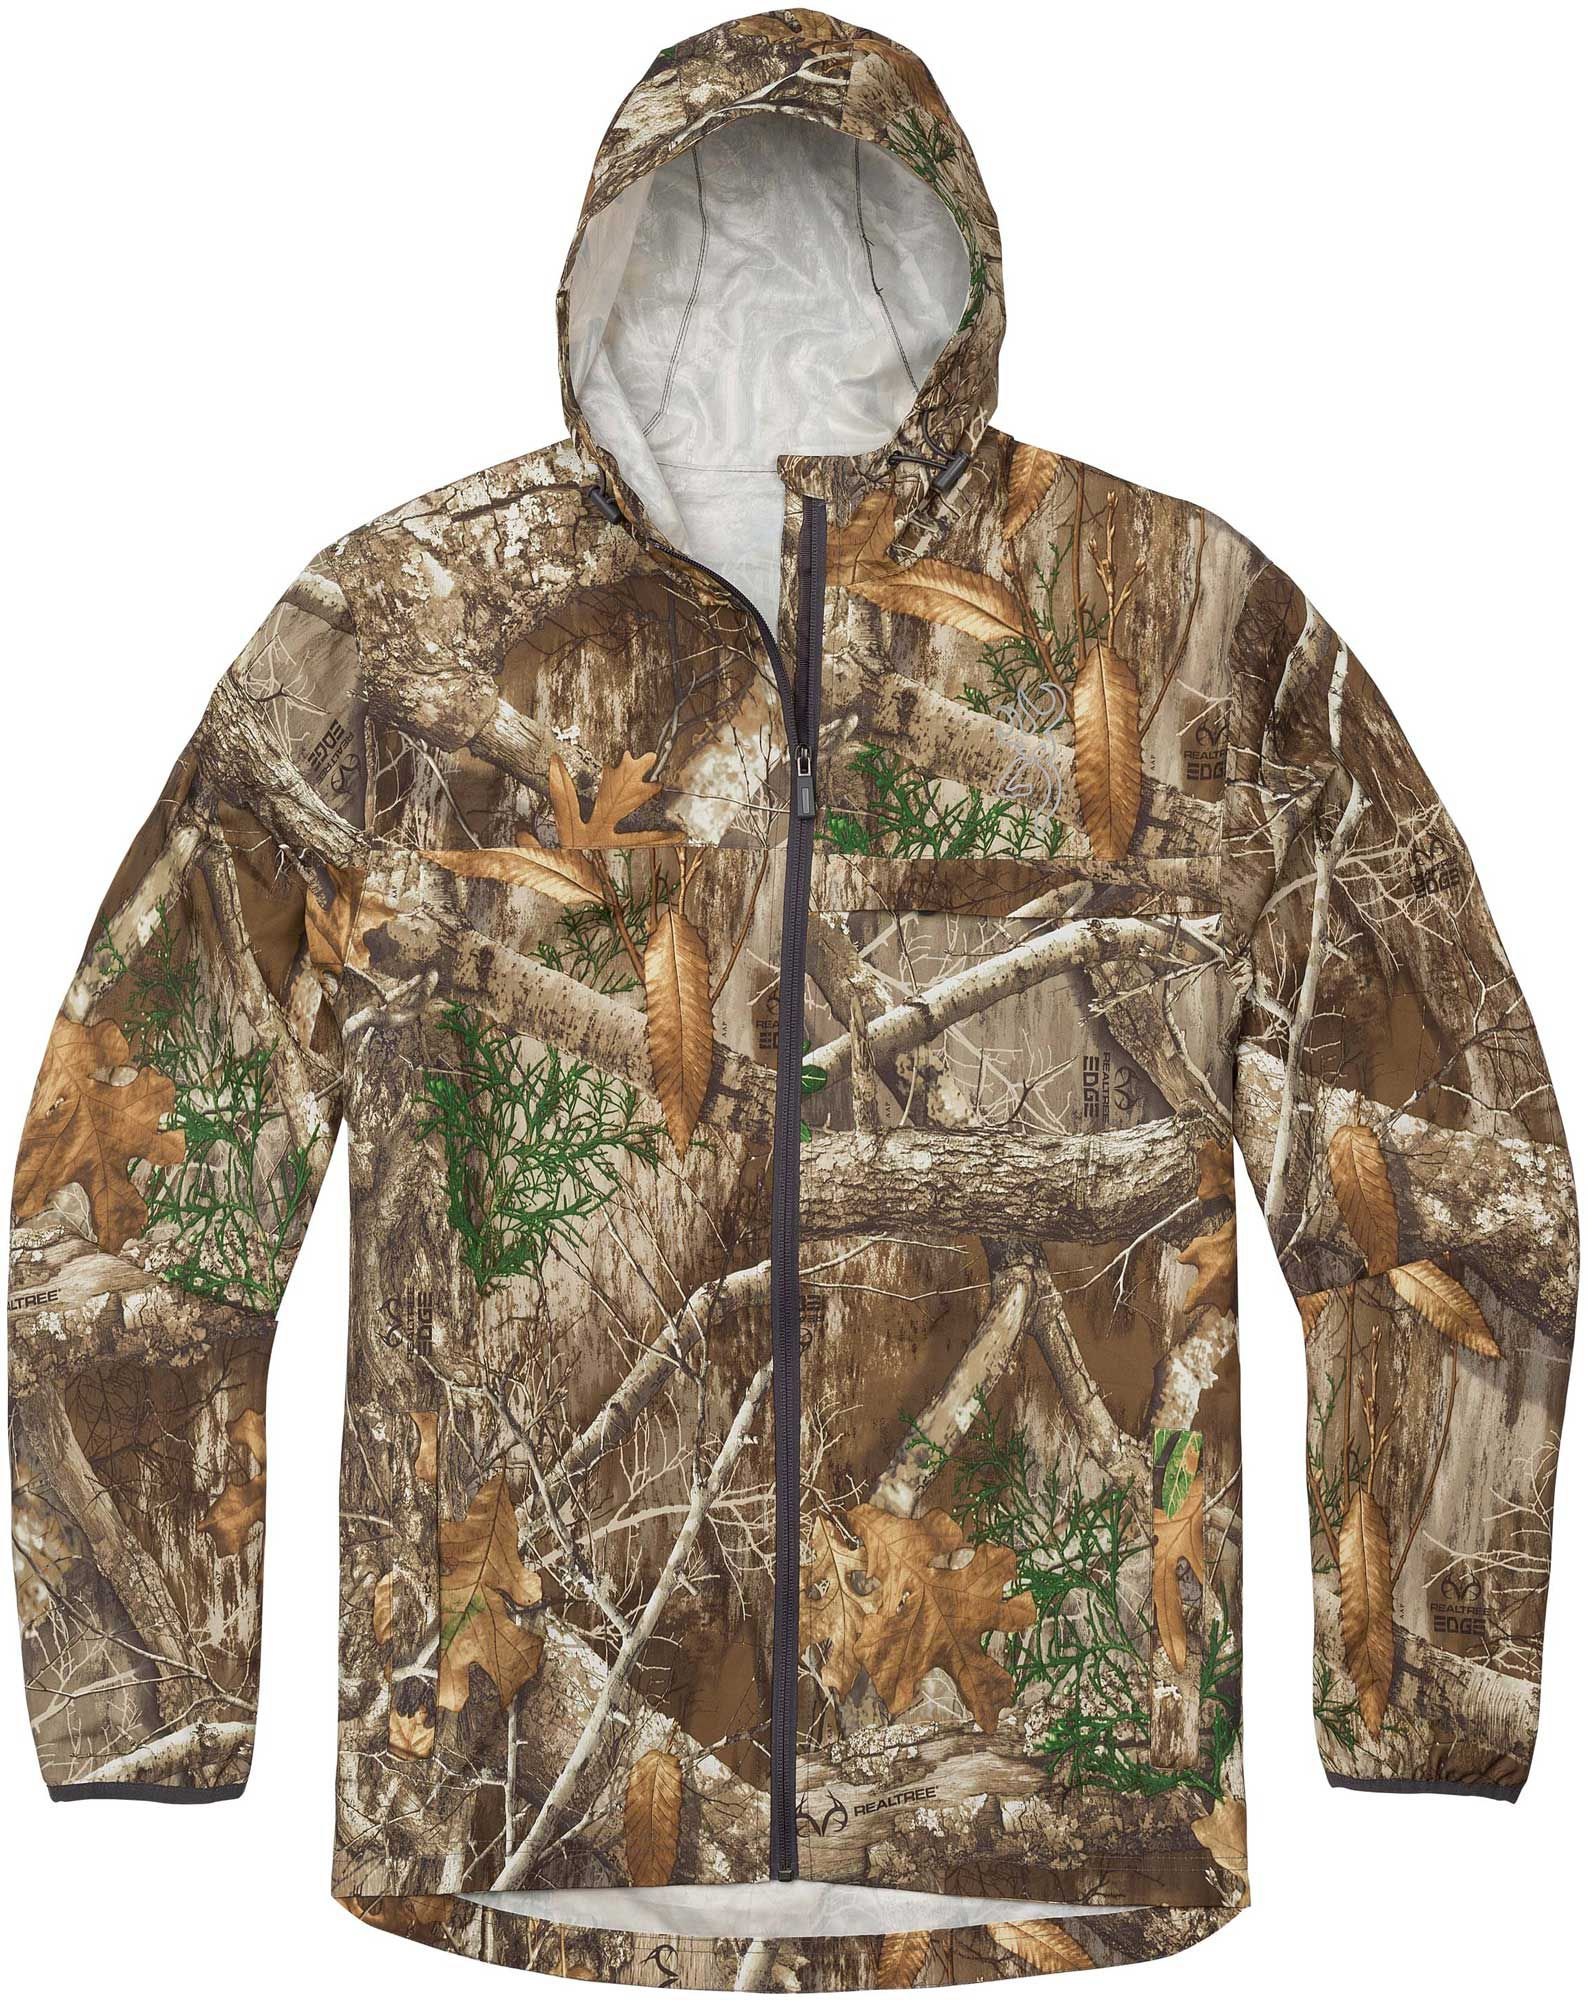 Browning CFS Hunting Rain Jacket, Men's, Medium, Mossy Oak Breakup Country